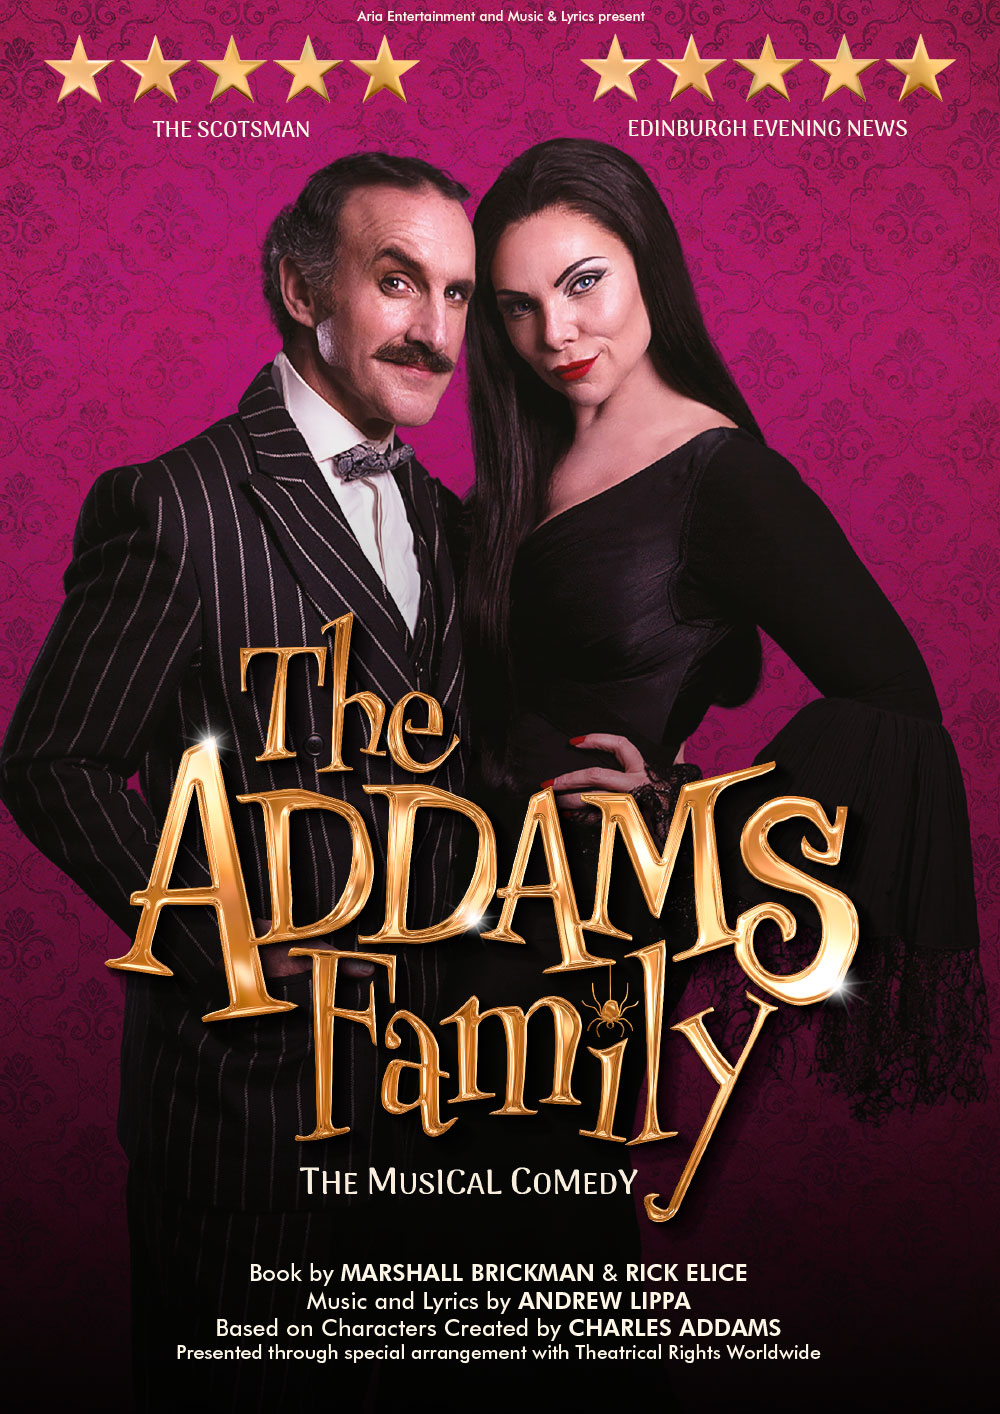 The Addams Family Poster Show Image